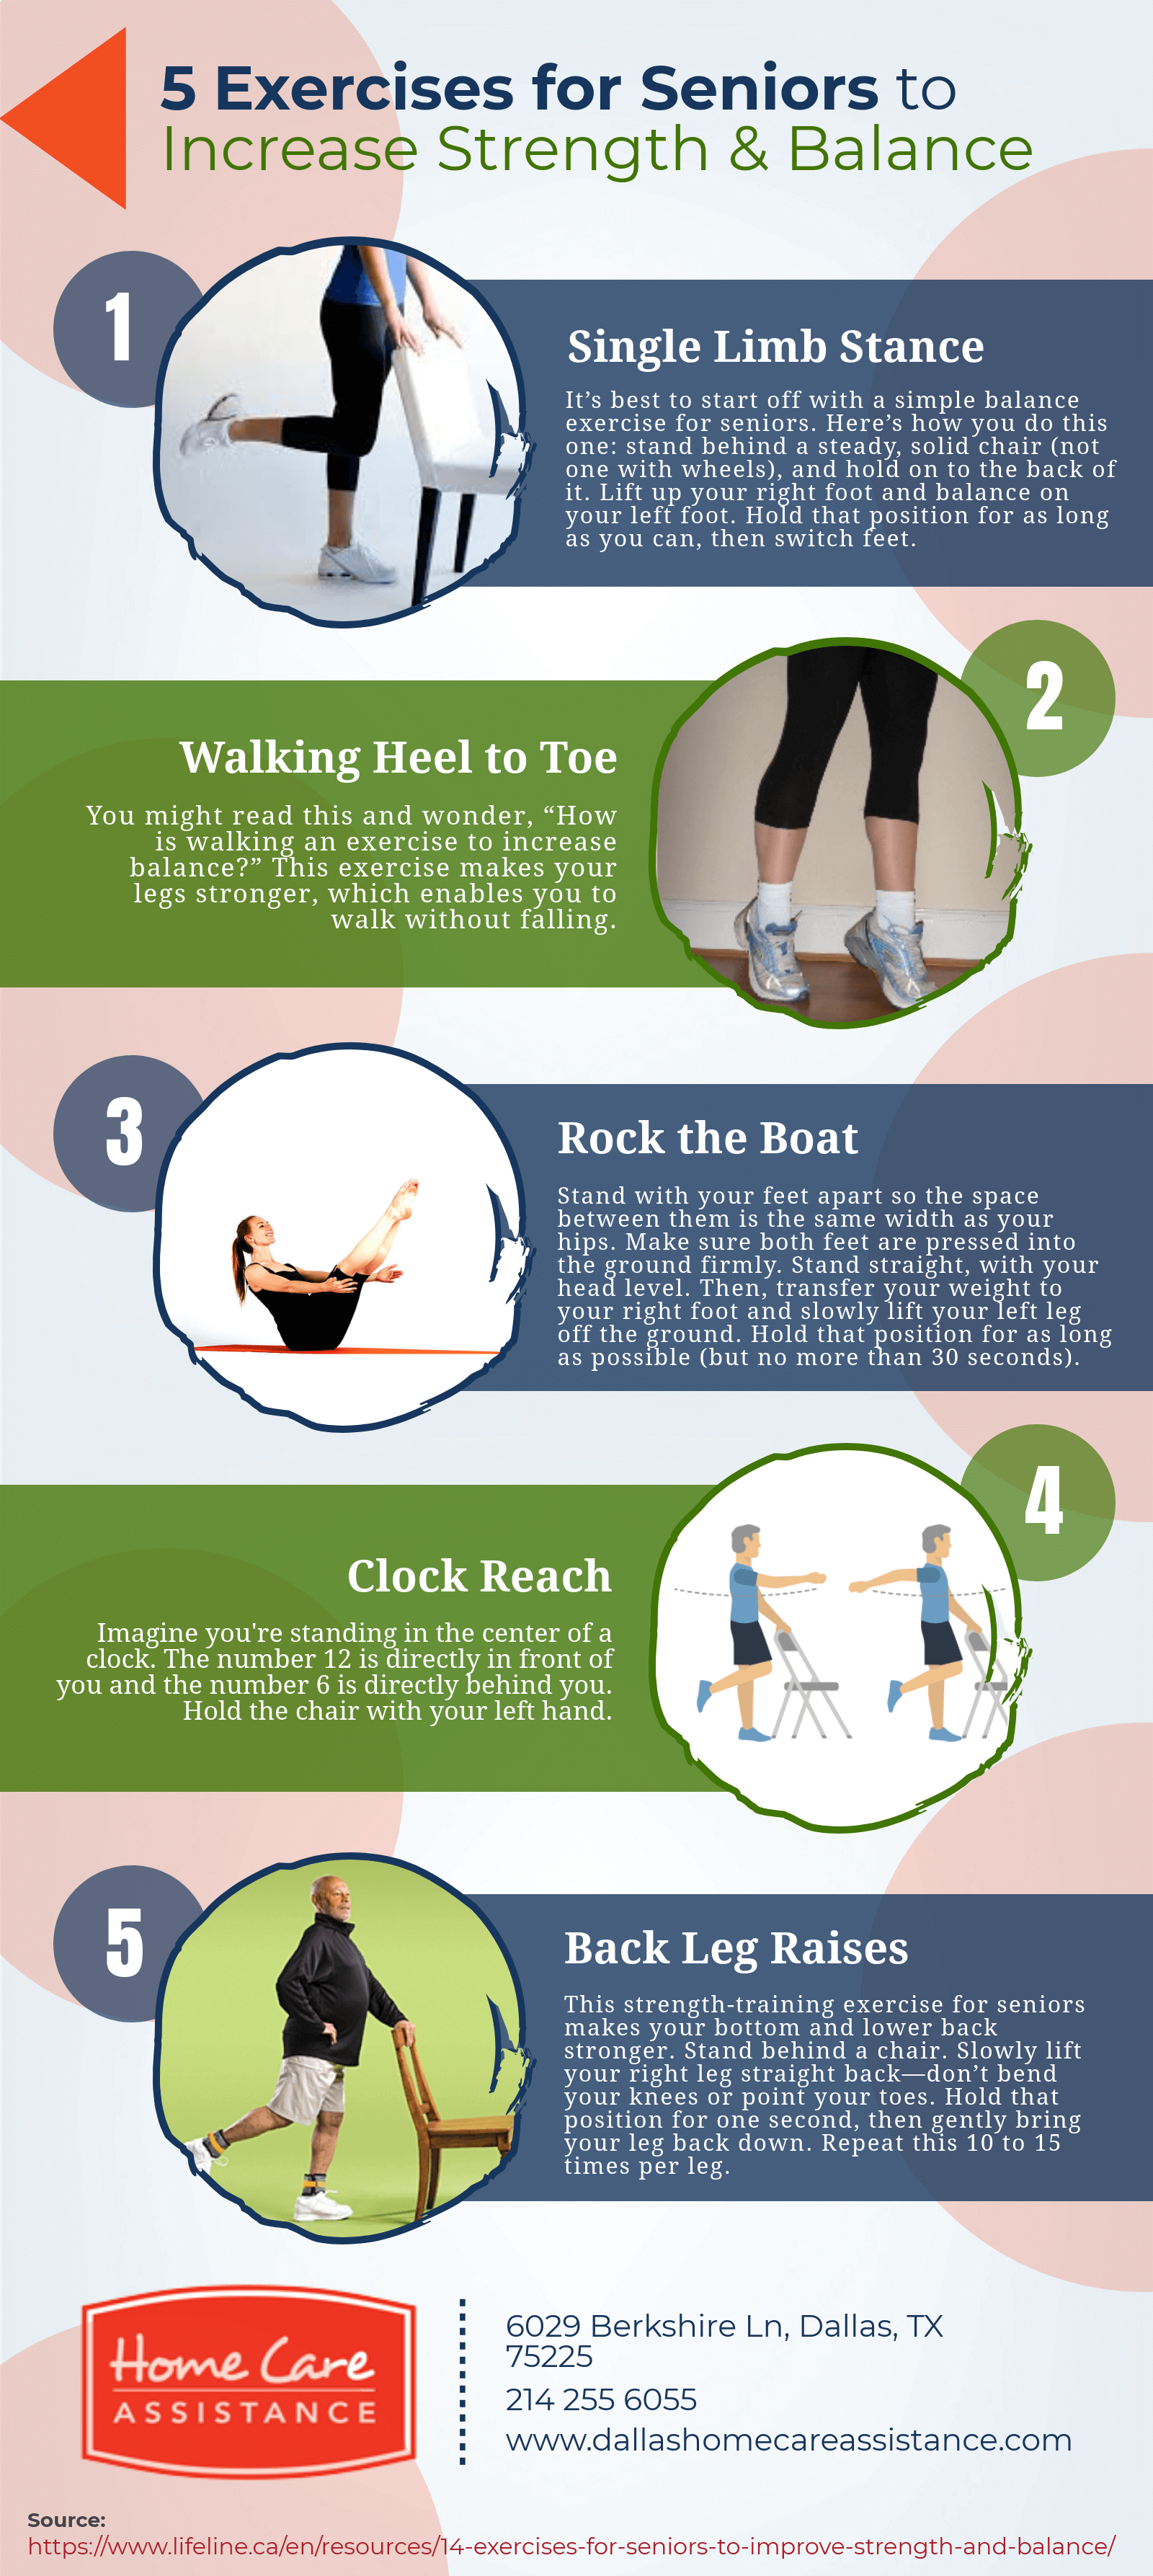 5 Strength & Balance Exercises for Seniors [Infographic]